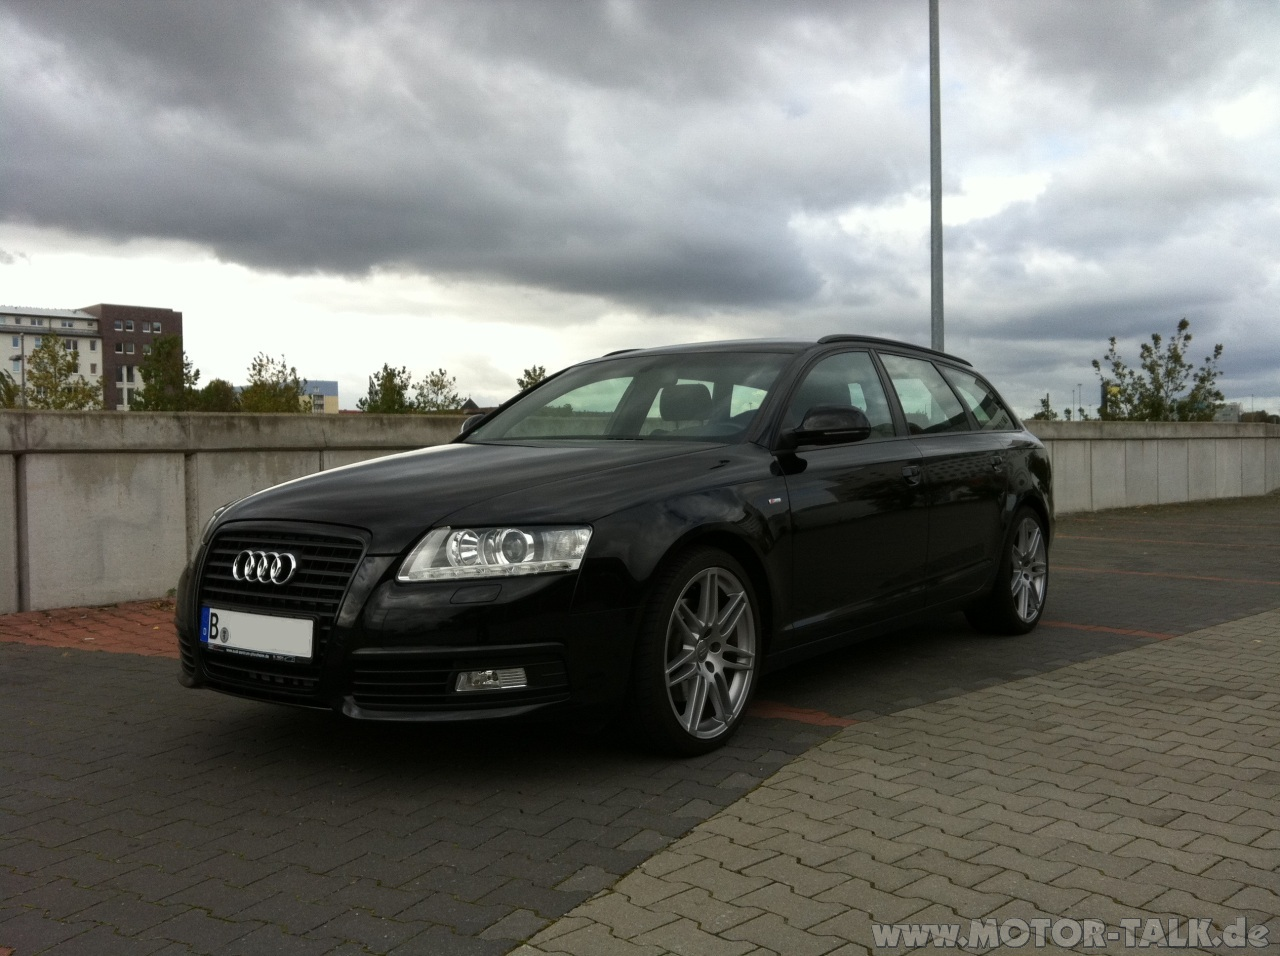 2009 audi a6 avant 4f c6 pictures information and specs auto. Black Bedroom Furniture Sets. Home Design Ideas